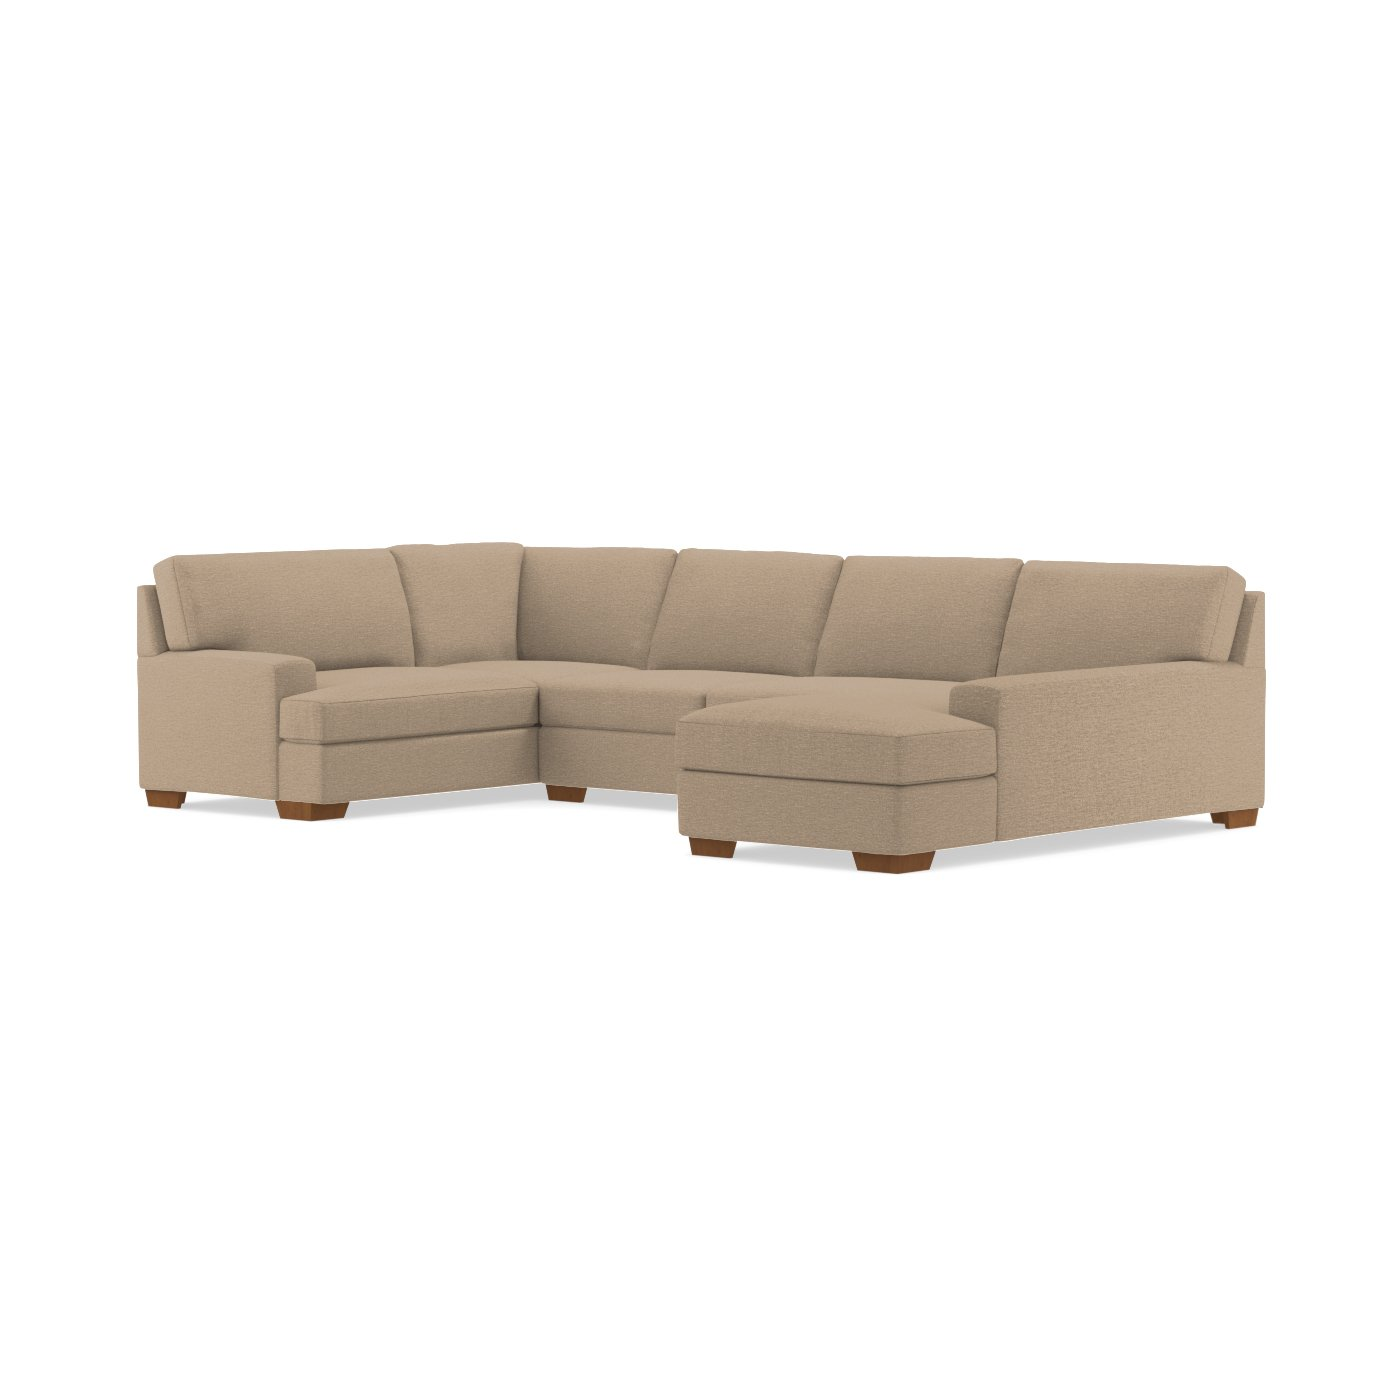 Bradbury 3pc Sectional Sofa Choice of Fabrics Apt2B